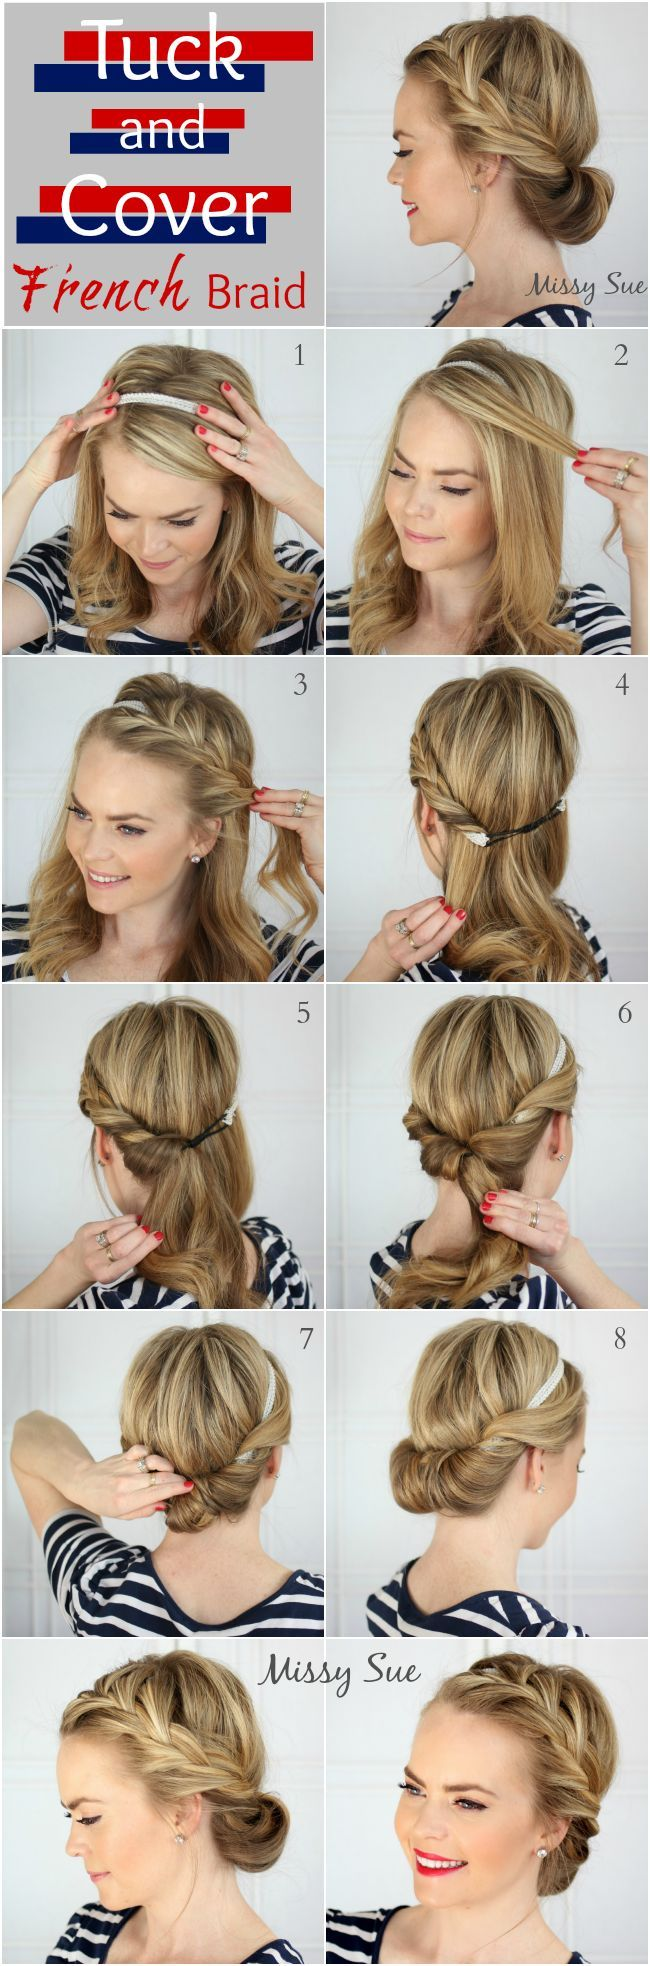 Fabulous How To Inside Out French Braid Bangs Braids Hairstyle Inspiration Daily Dogsangcom